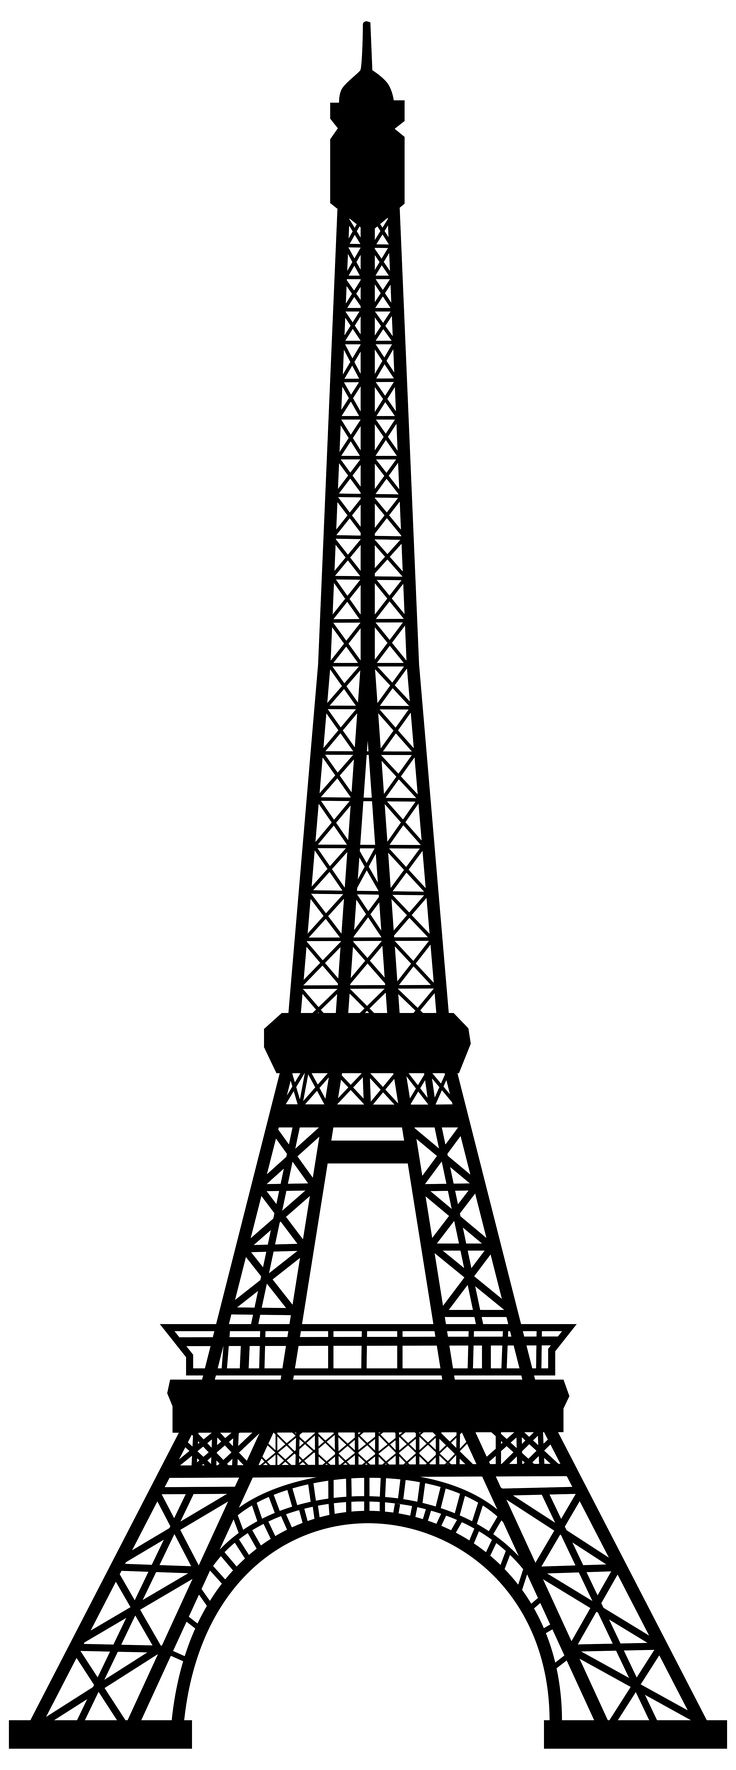 Tower clipart outline.